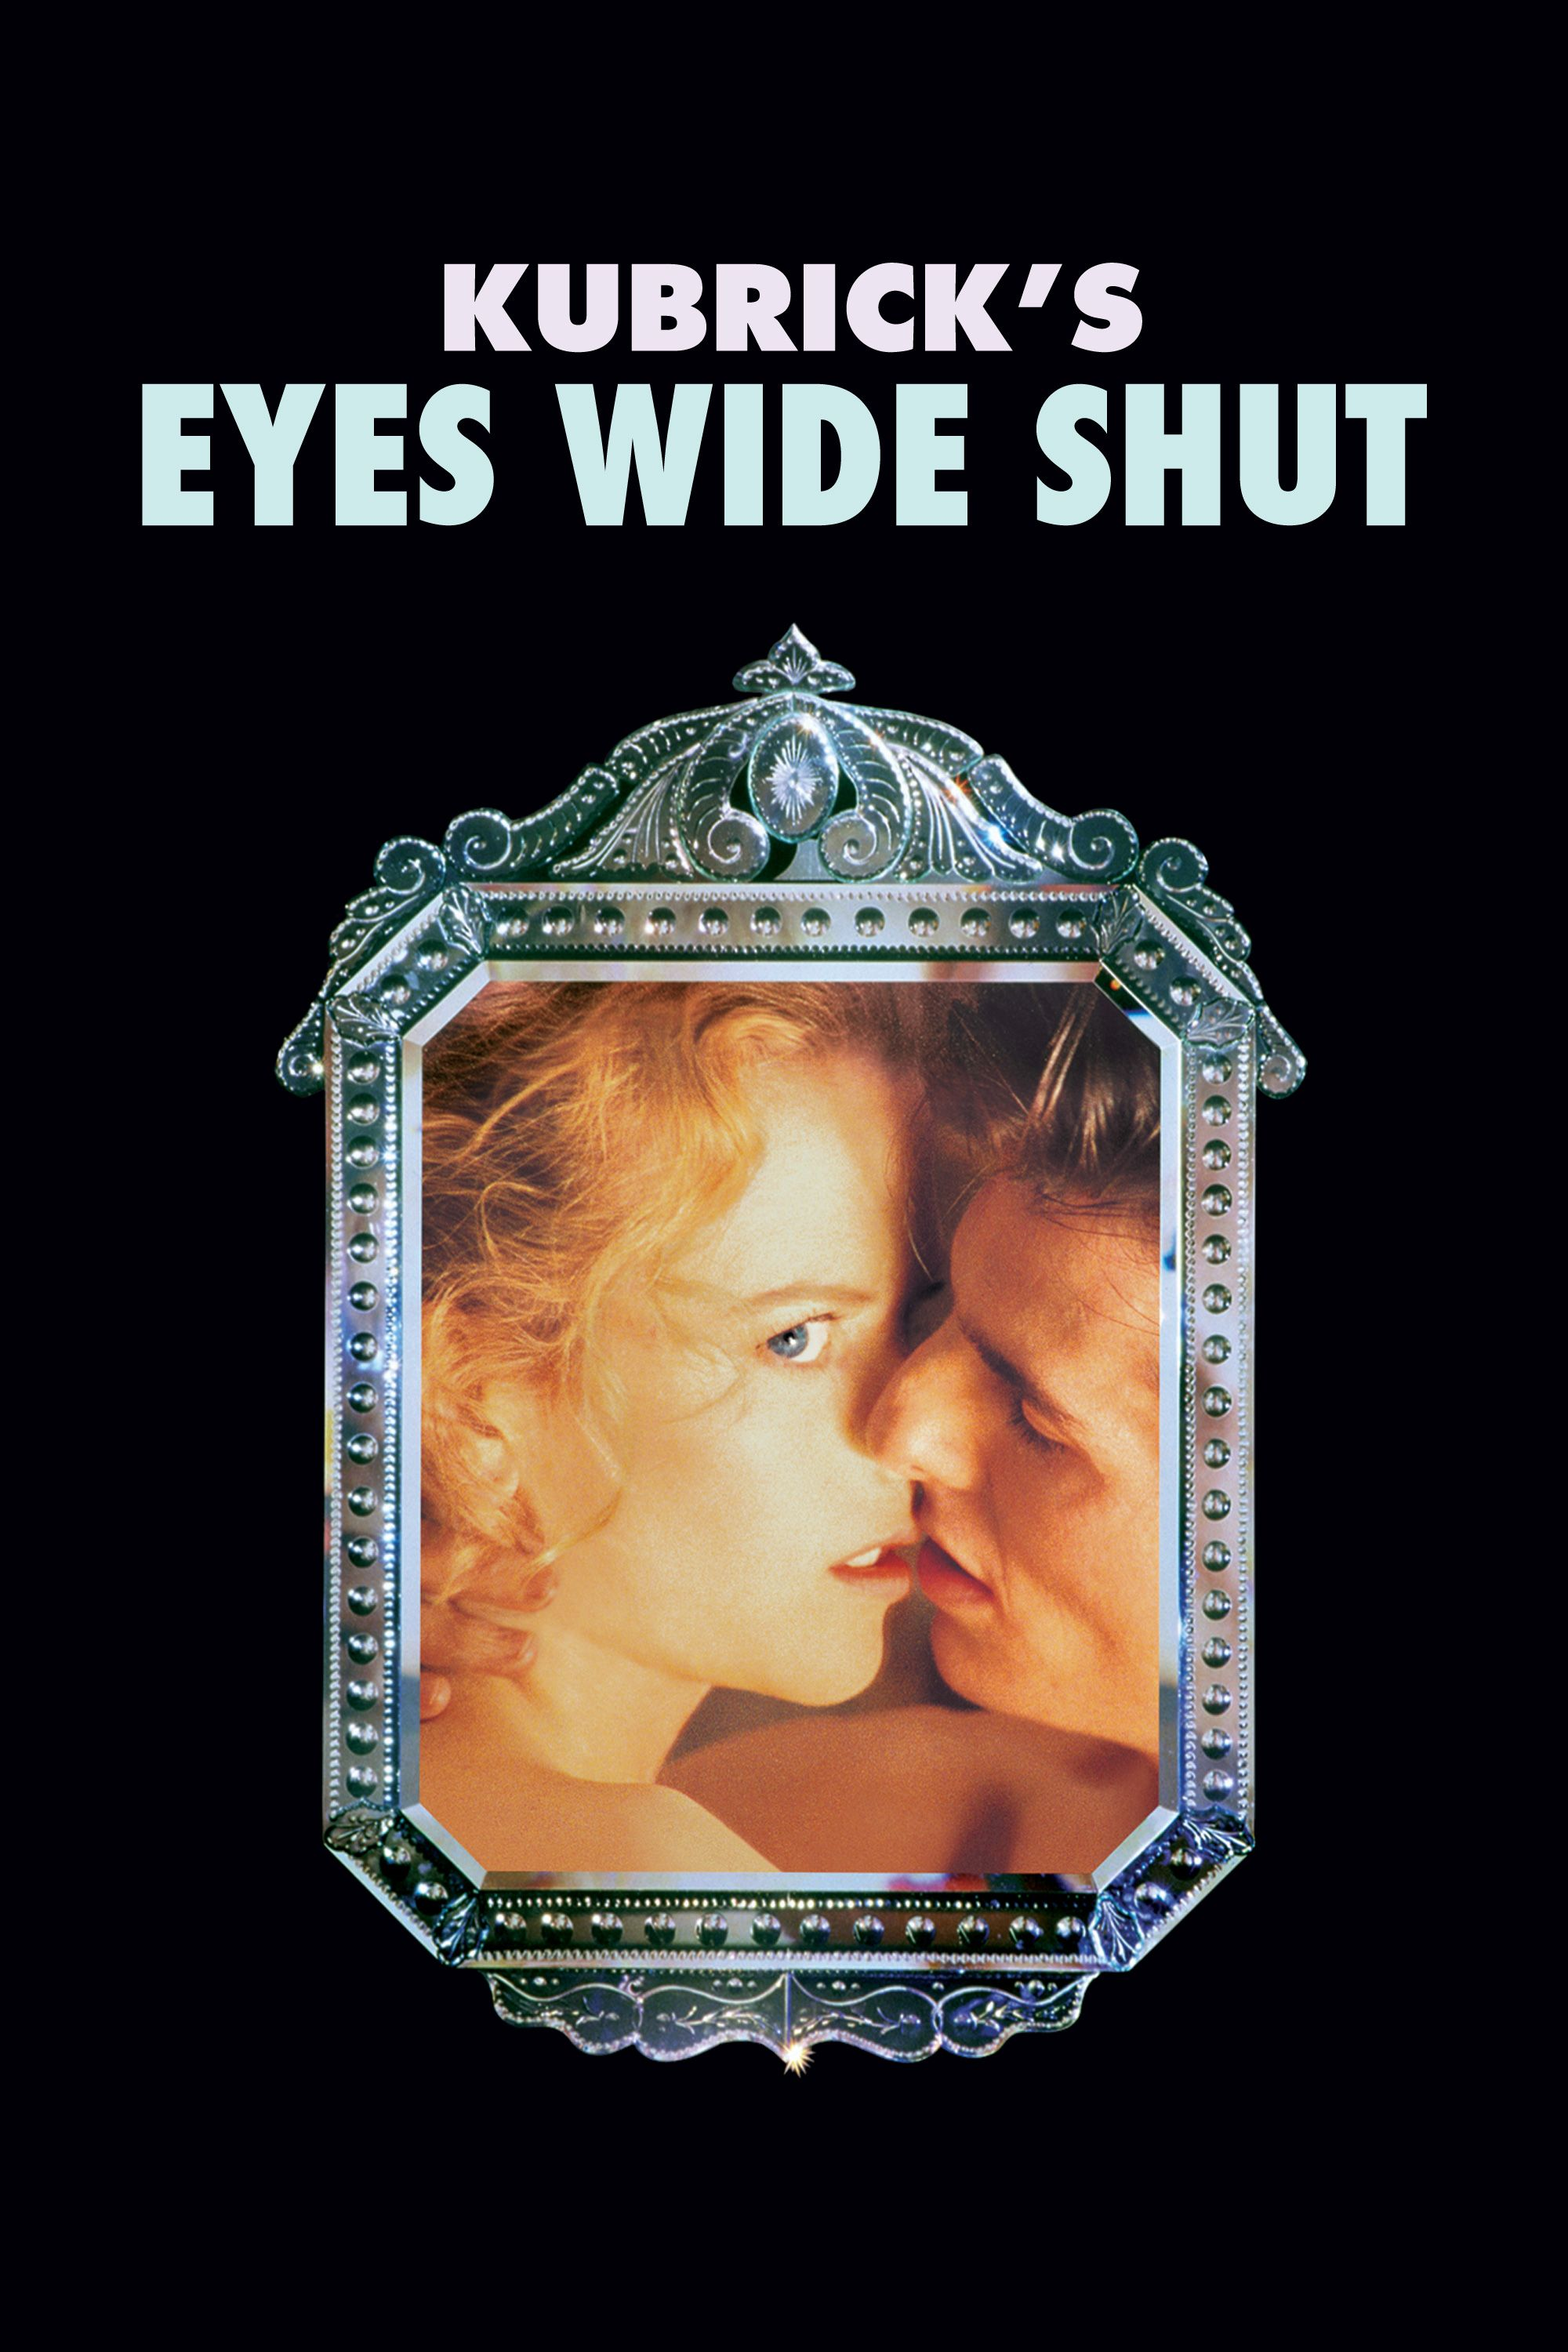 eyes wide shut full movie download in hindi dubbed